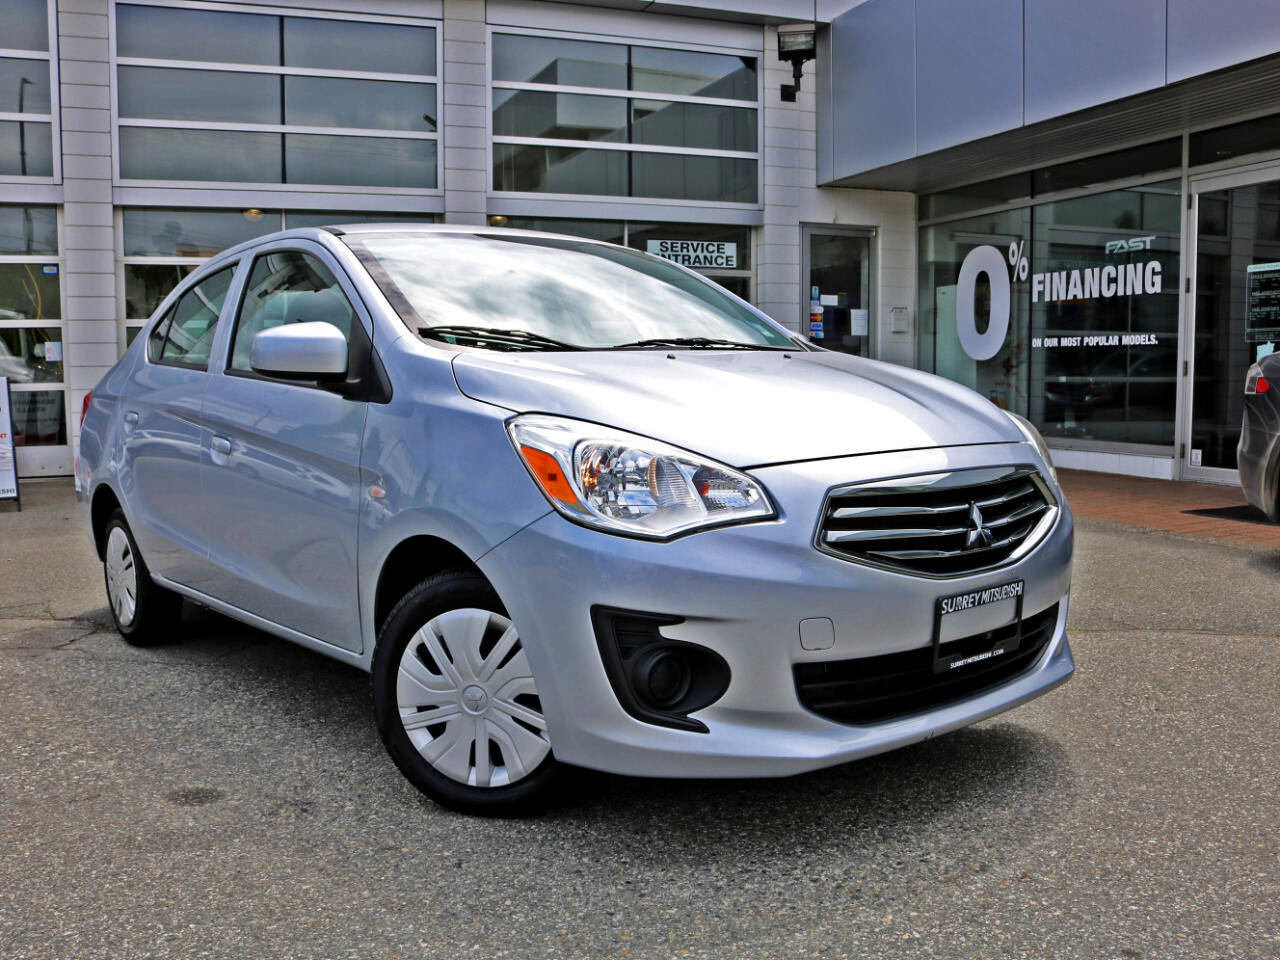 2017 Mitsubishi Mirage G4 LOW KMS BC Car No Accidents CVT Automatic Get a Lo